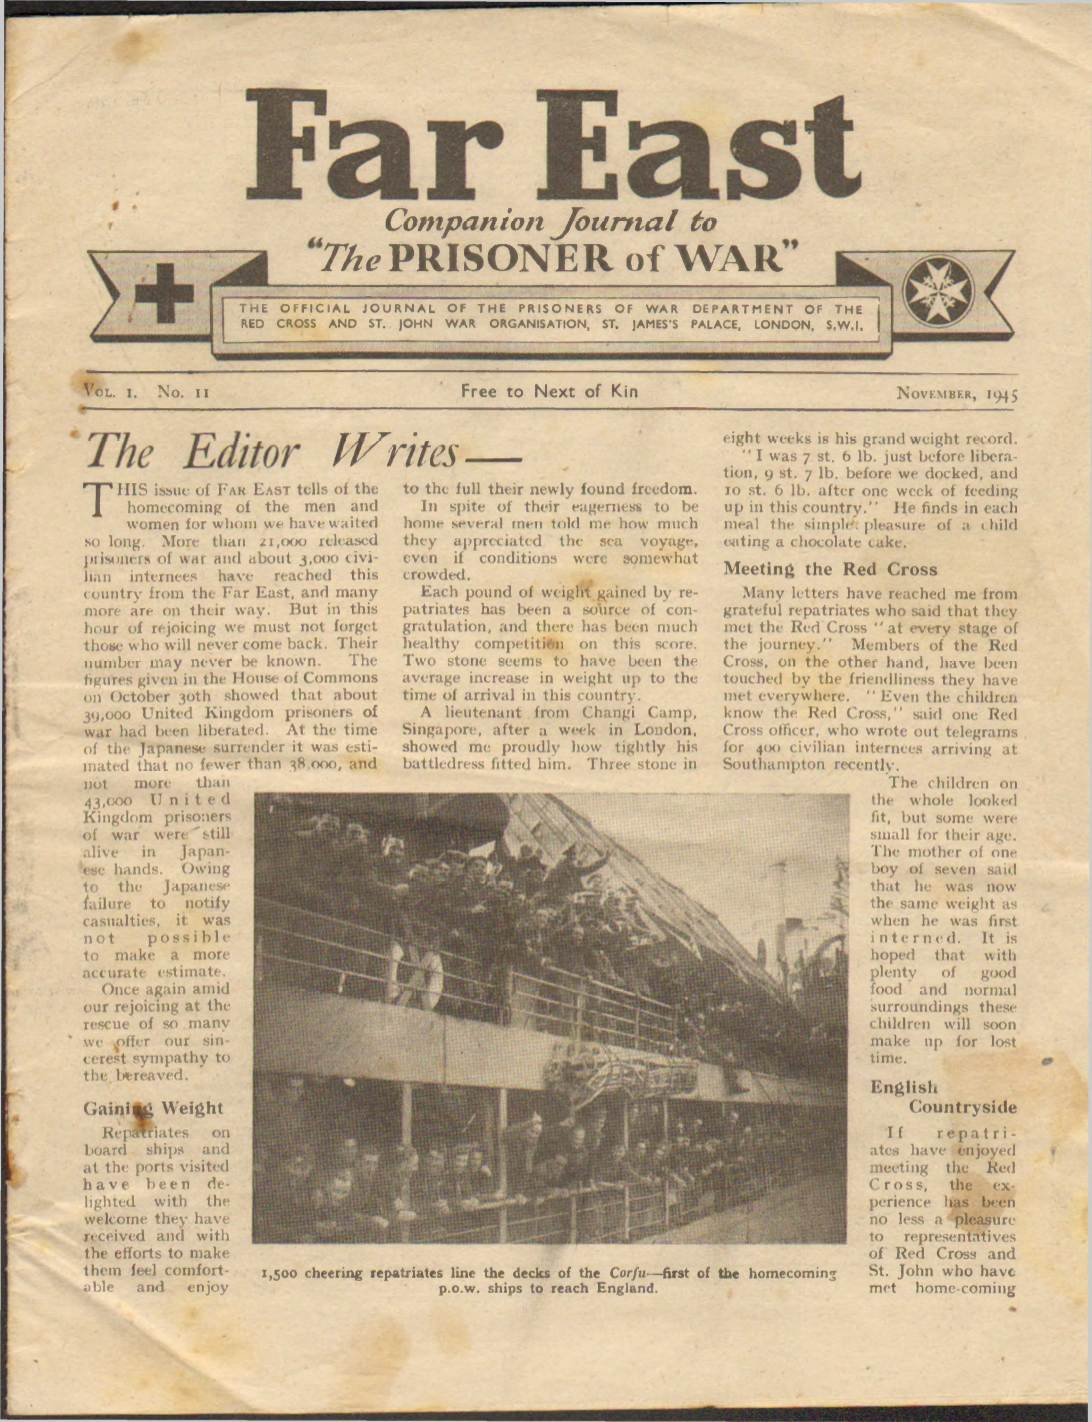 View individual pages of 'Far East, Companion Journal to The Prisoner of War, Vol. I, No. II, November 1945'